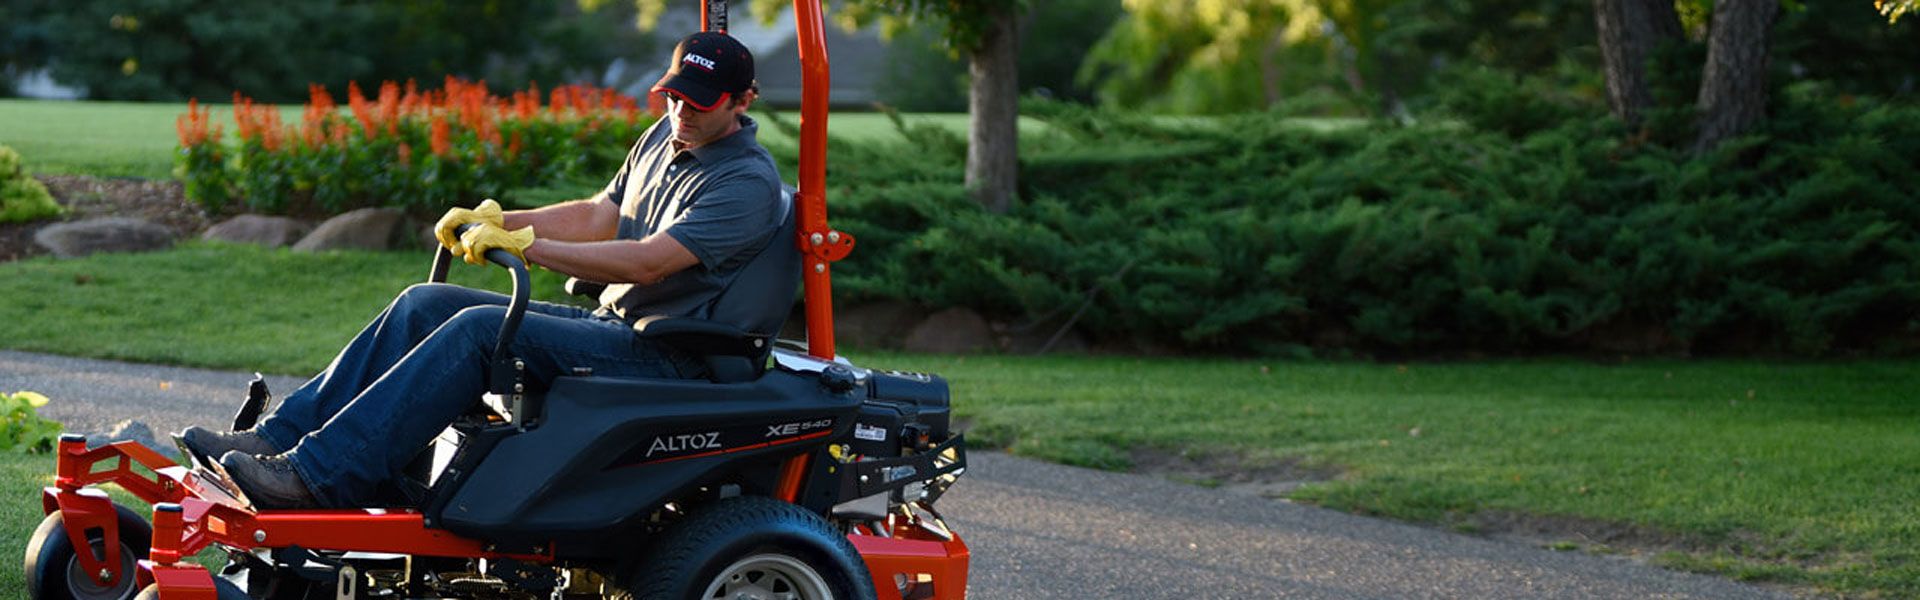 XE Series Zero Turn mower